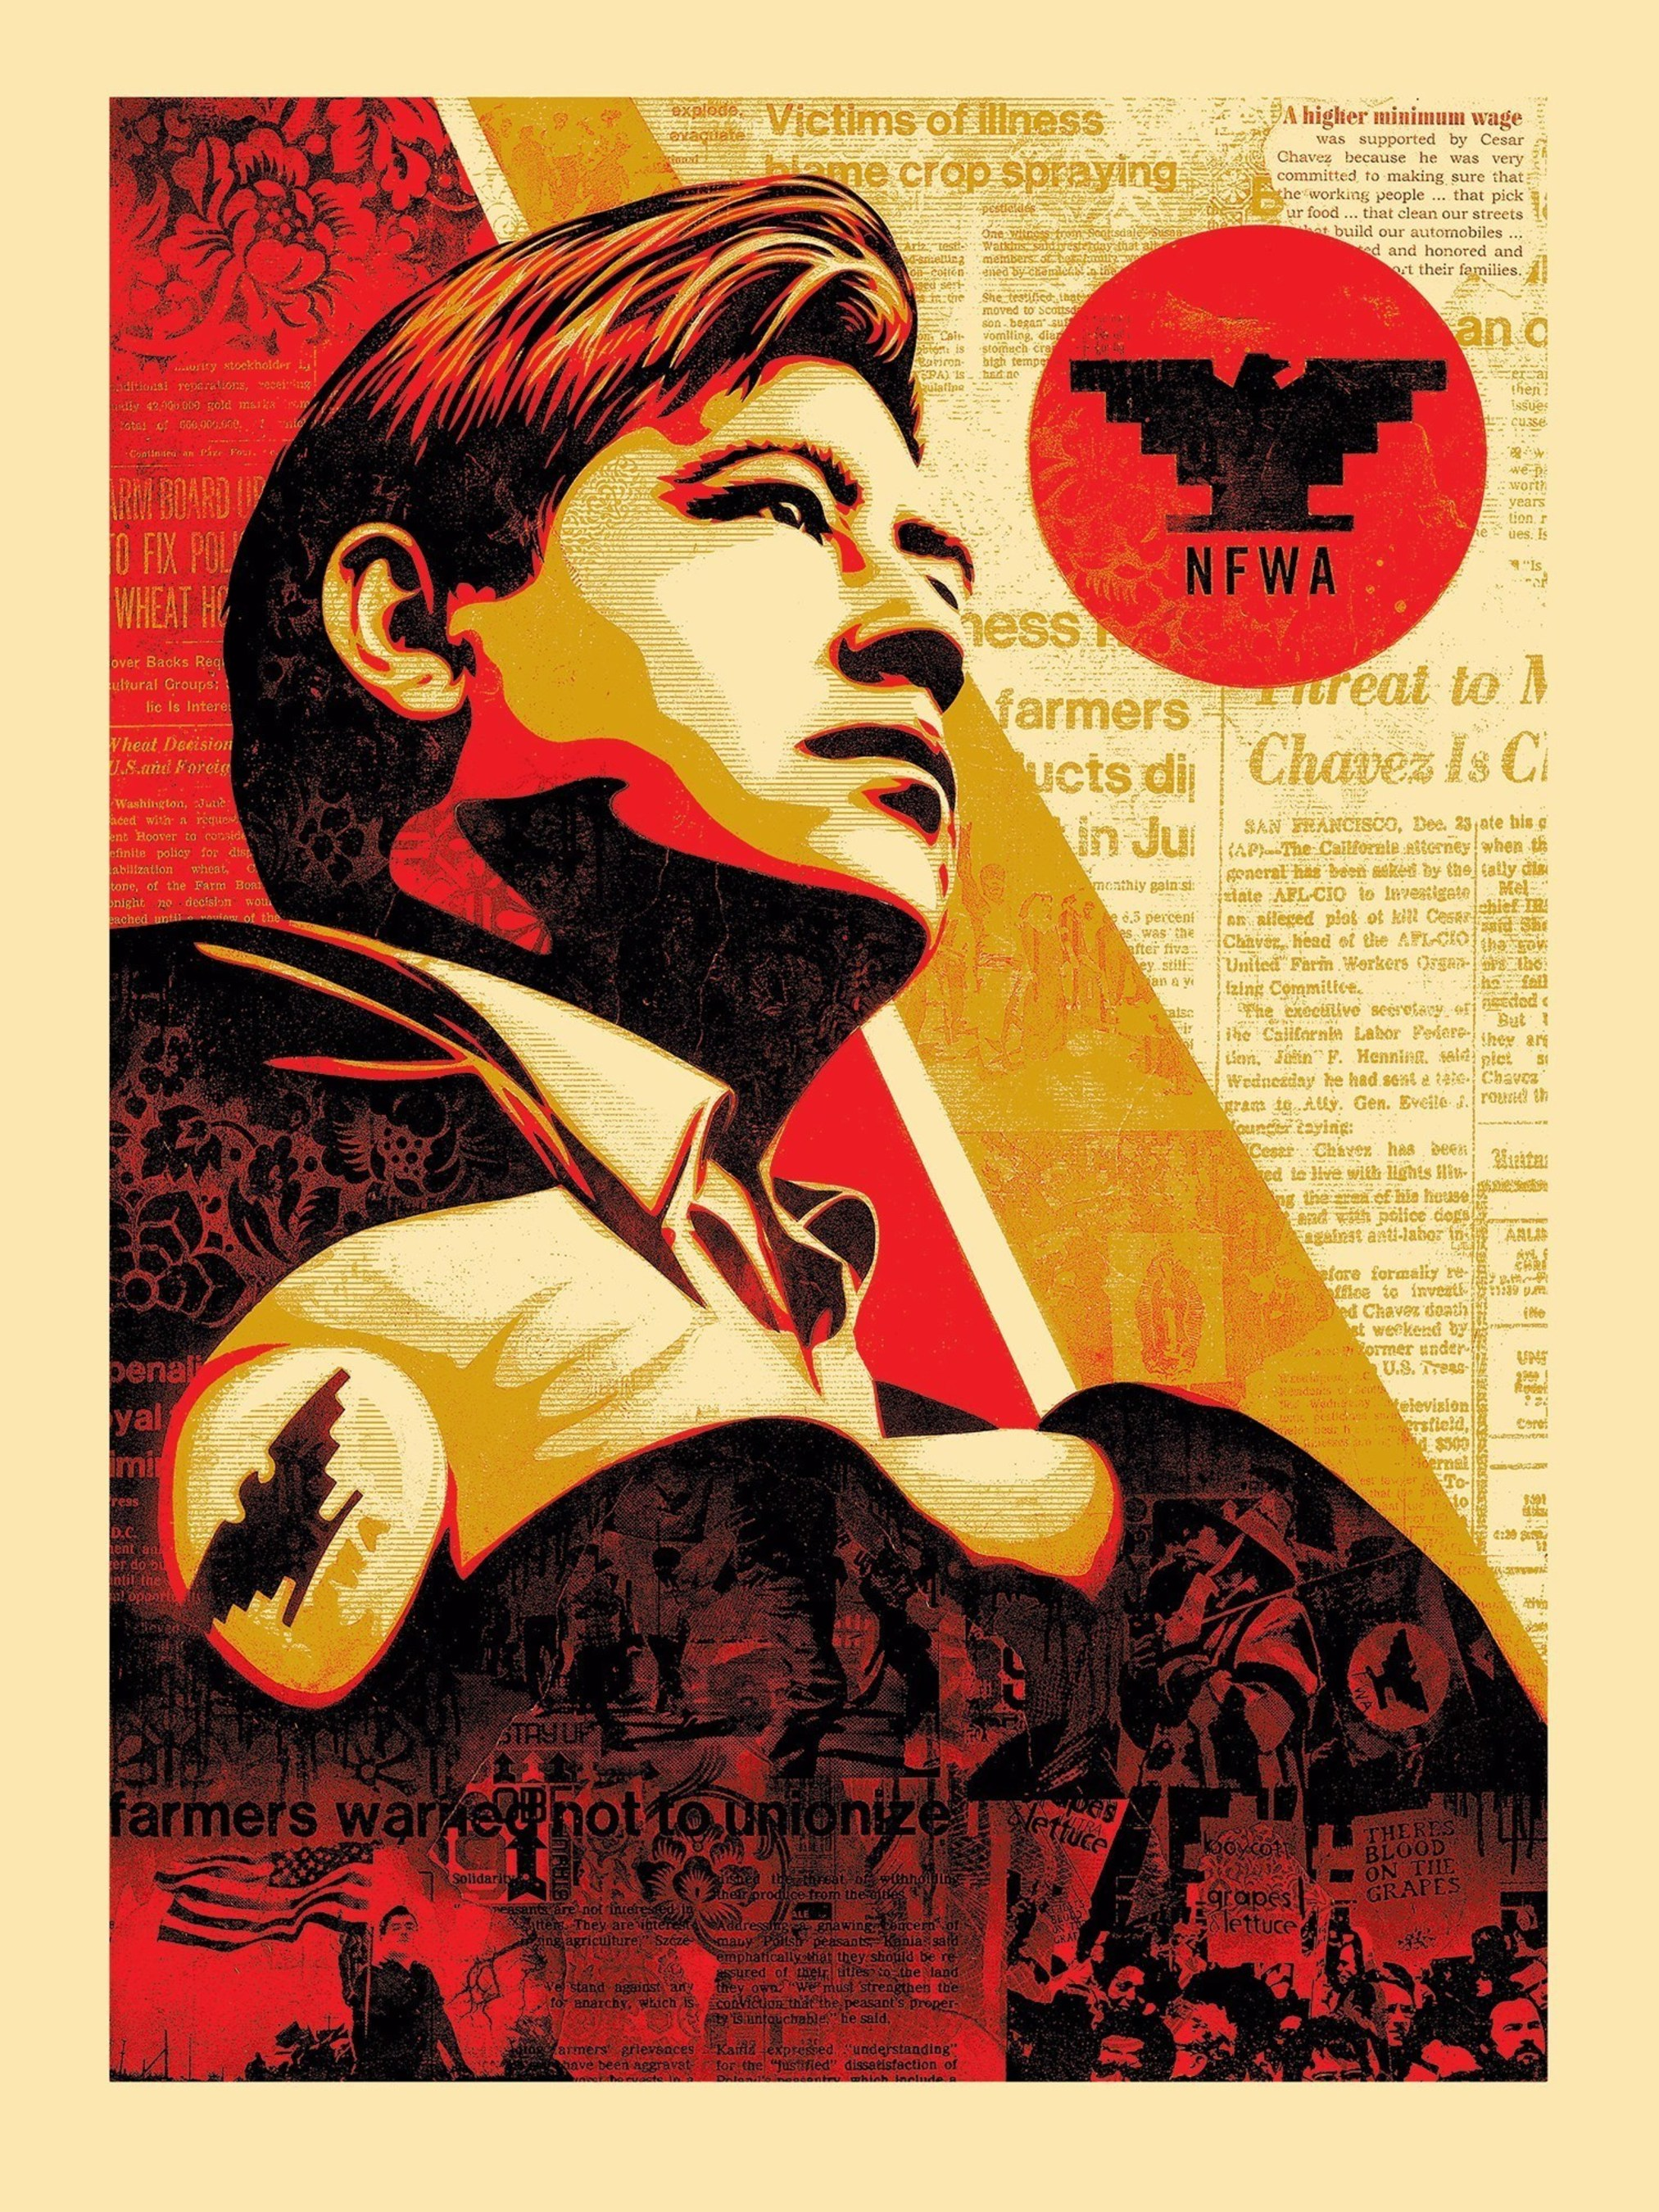 Shepard Fairey x Jim Marshall - Workers' Rights - American Civics Series - Serigraph - 40 x 30 inches - Edition of 100 - 2016